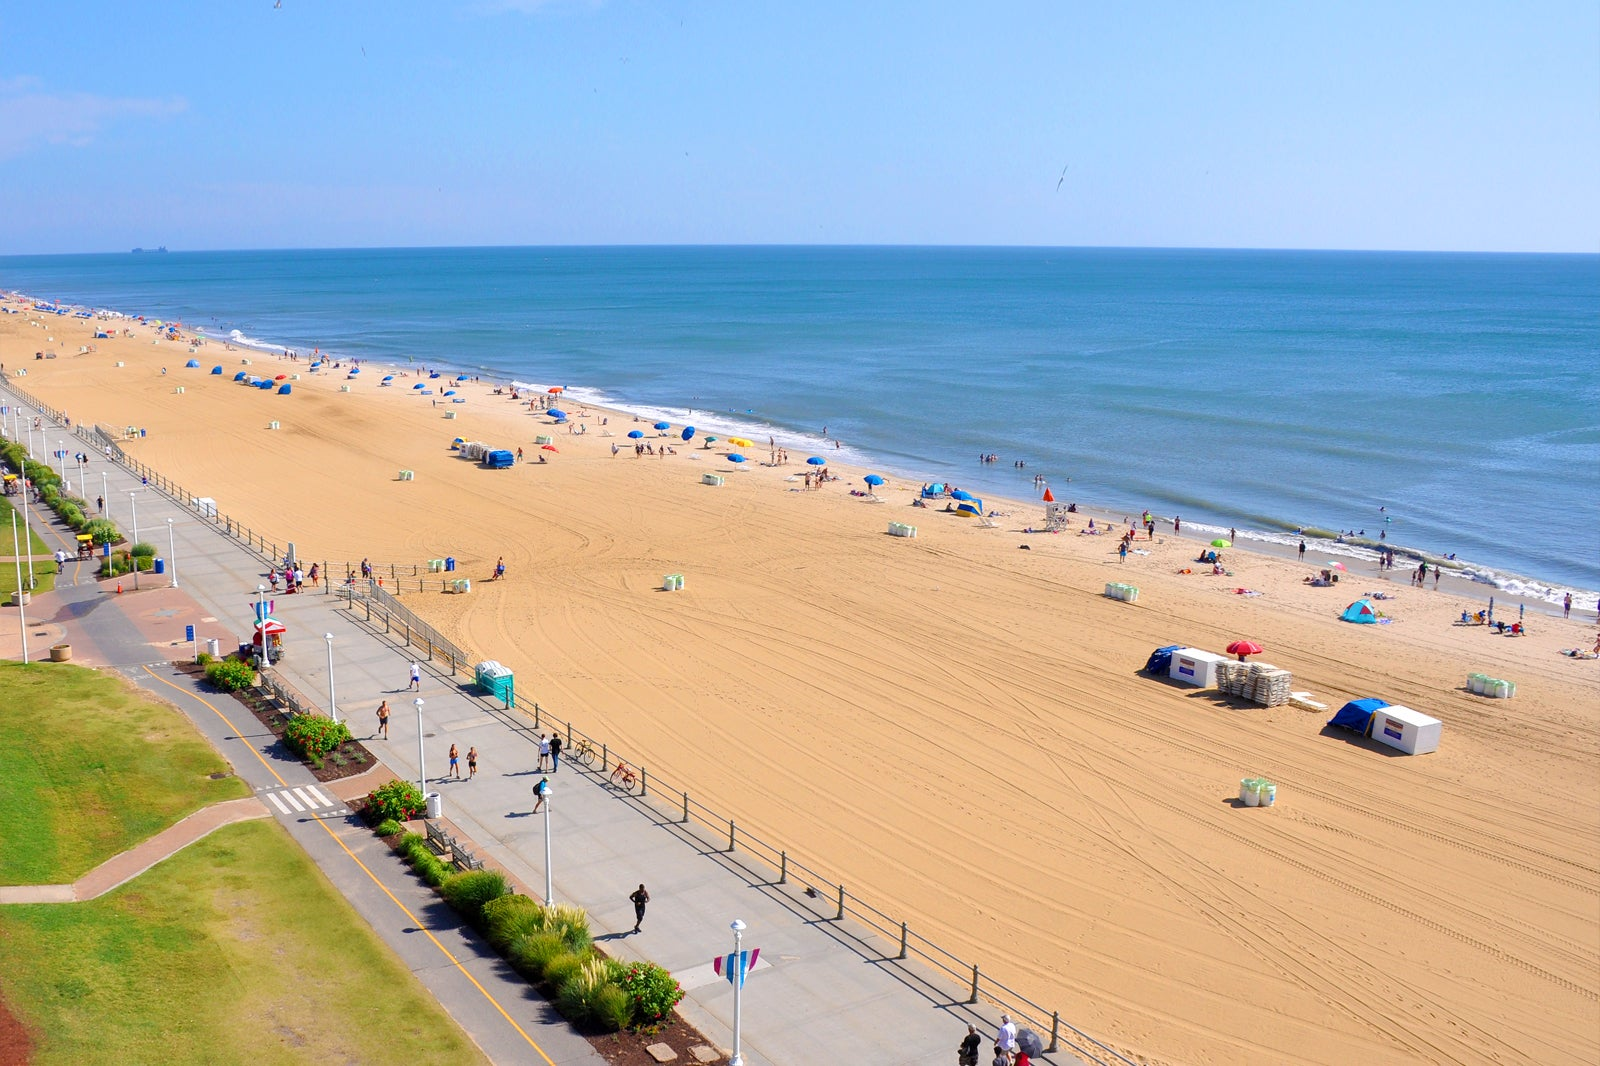 10 Things to Do in Virginia Beach on a Small Budget